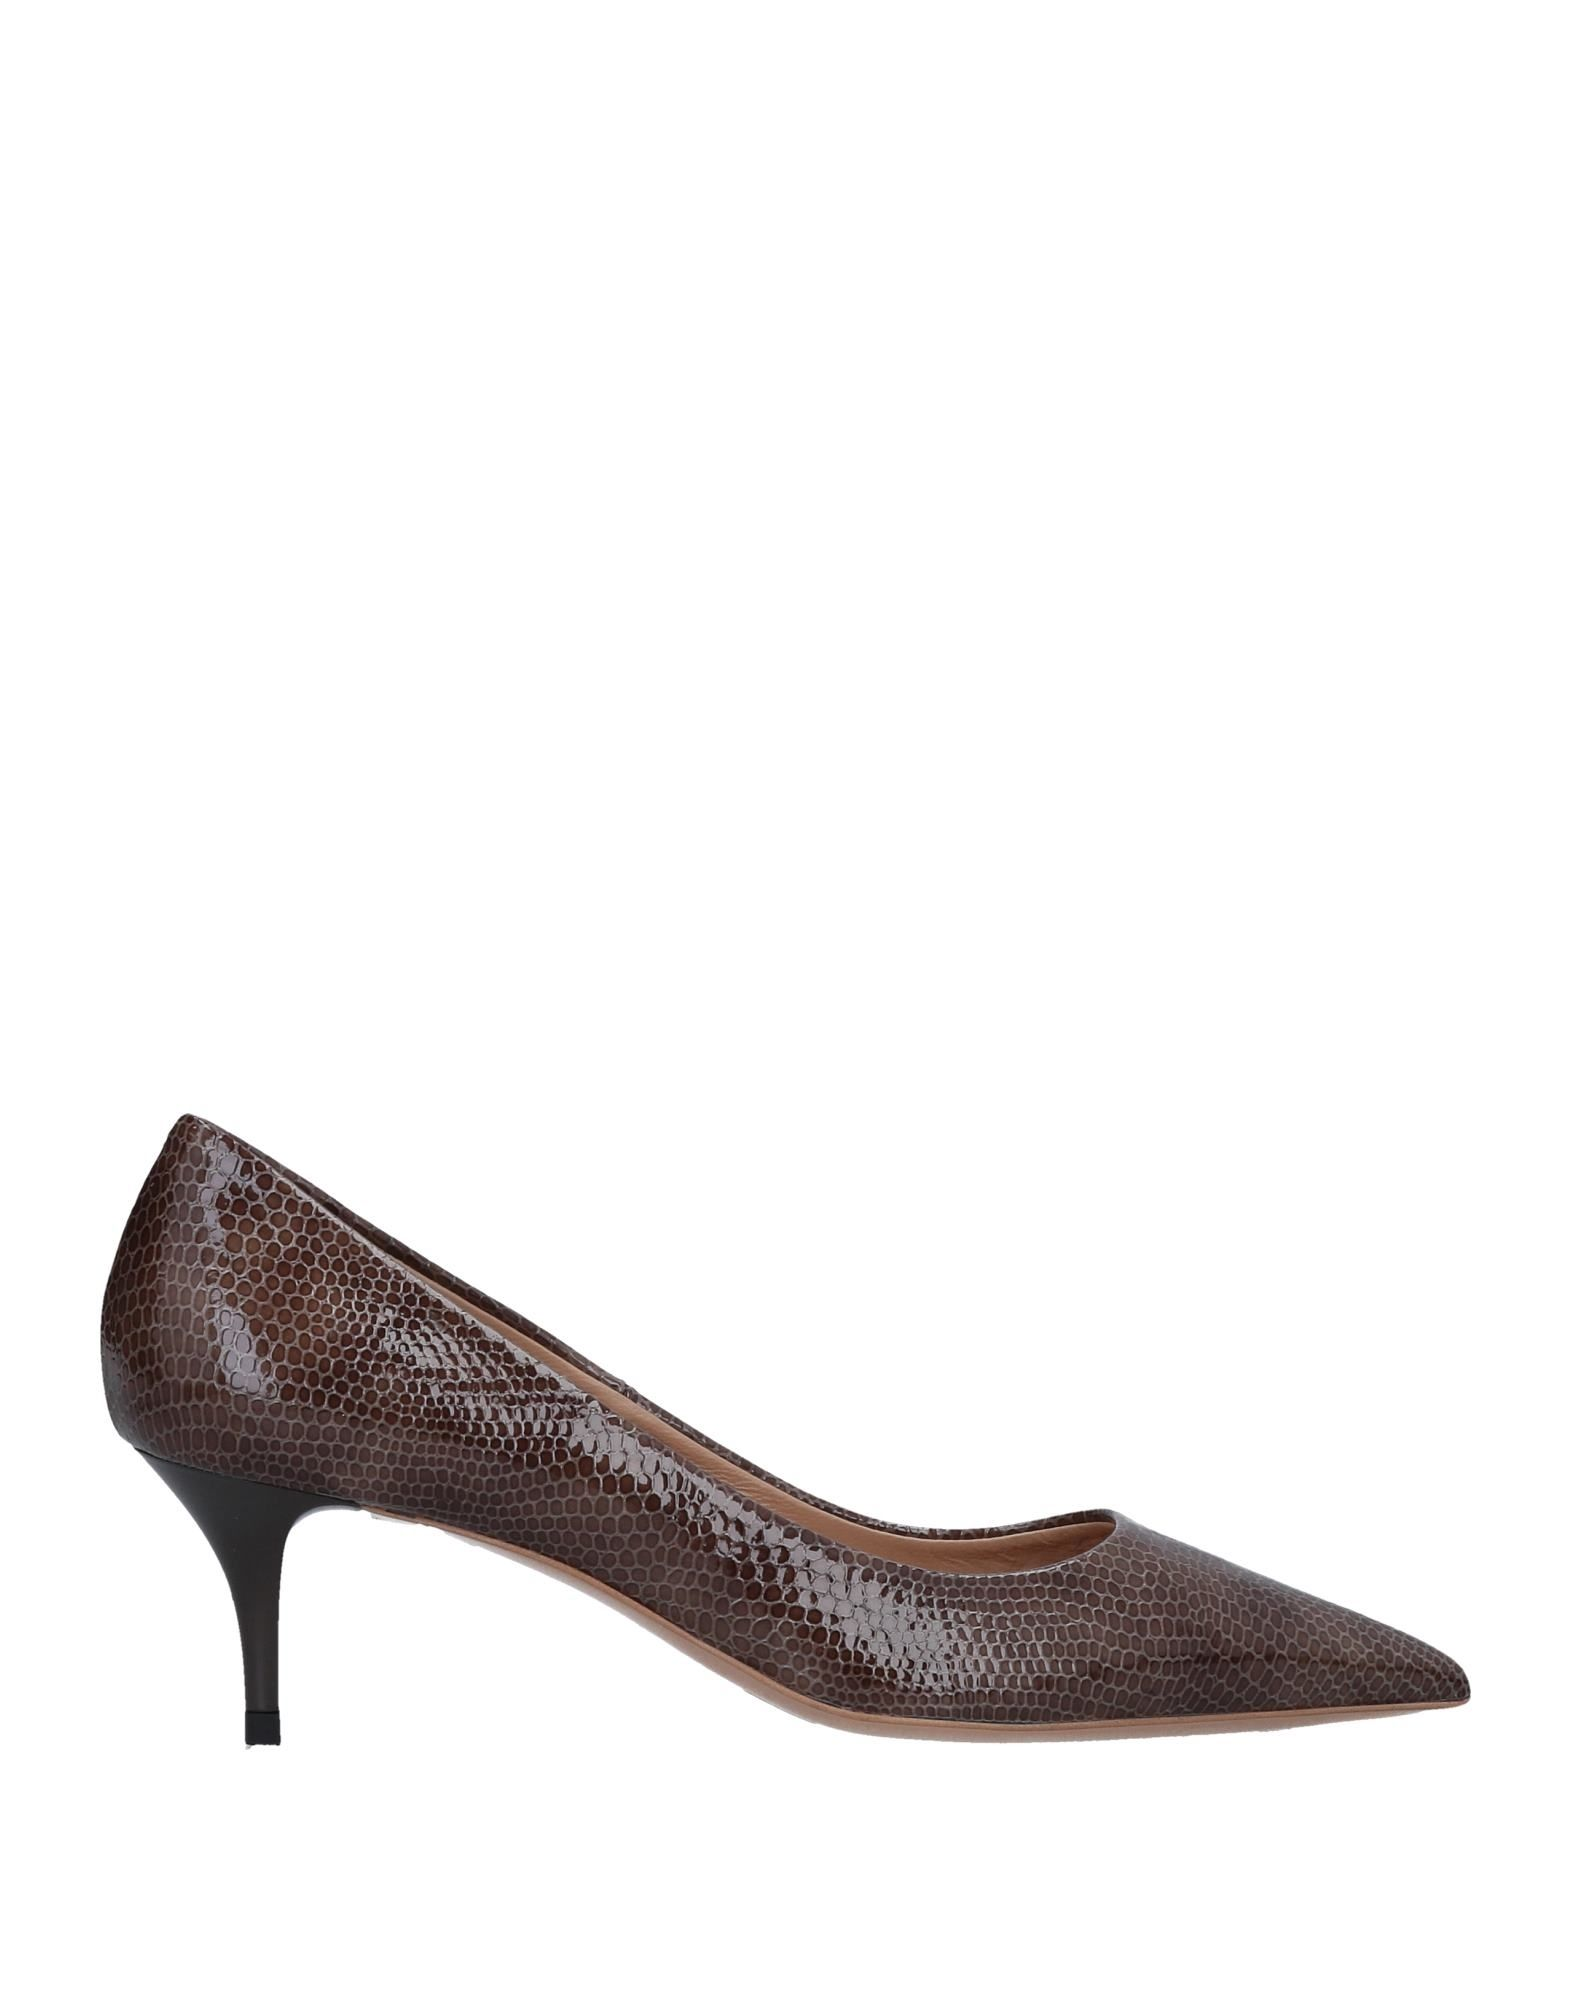 Fiorangelo Pump - Fiorangelo Women Fiorangelo - Pumps online on  Canada - 11511456JD 8eb78c